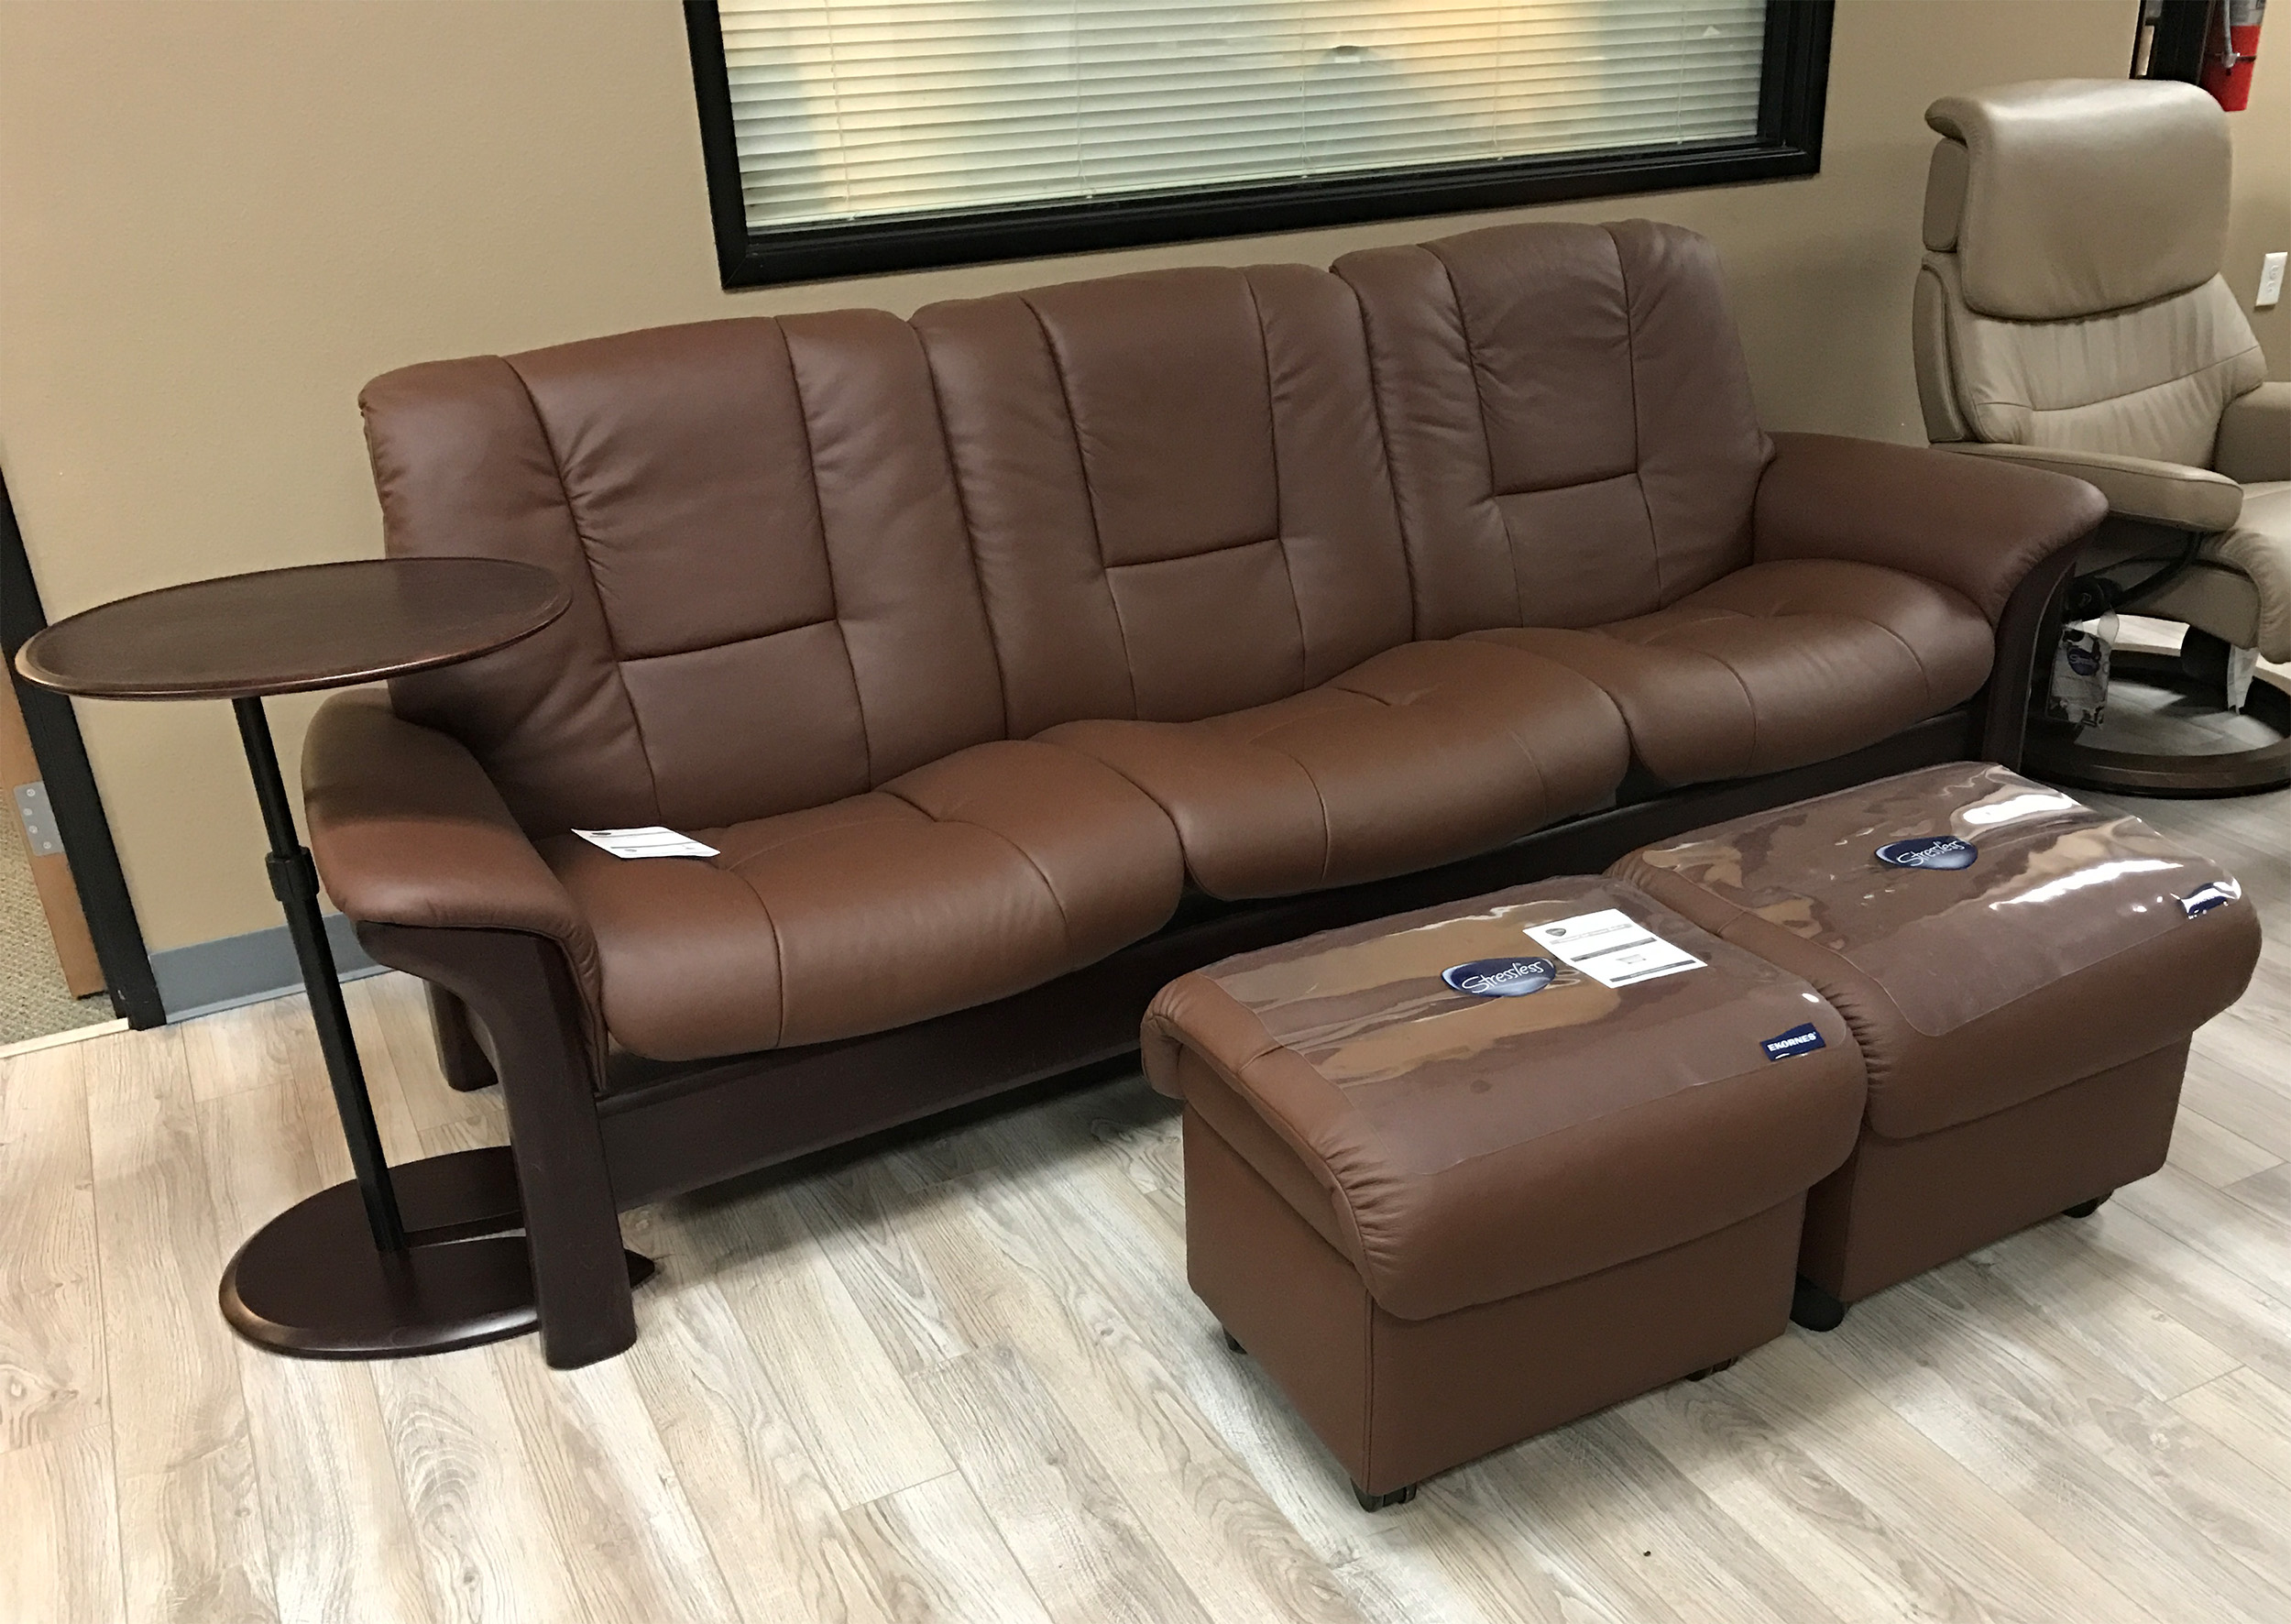 Stressless Buckingham 3 Seat Low Back Sofa Paloma Chocolate Leather & Stressless Buckingham 3 Seat Low Back Sofa Paloma Chocolate Leather ...